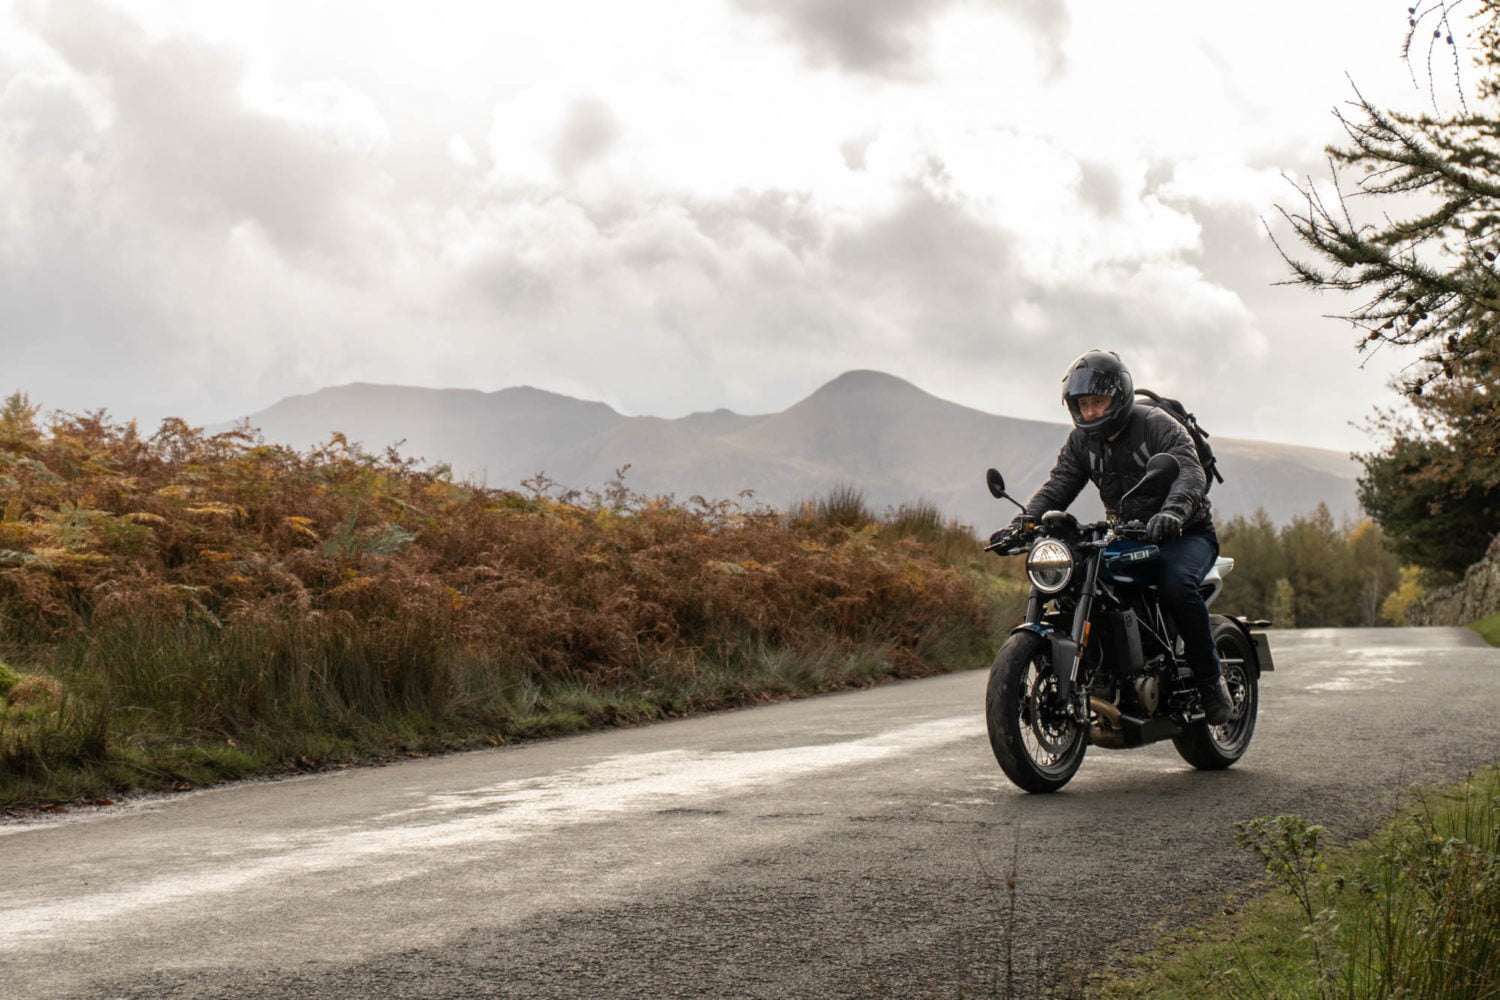 Best Motorcycle Gear for Autumn – Winter